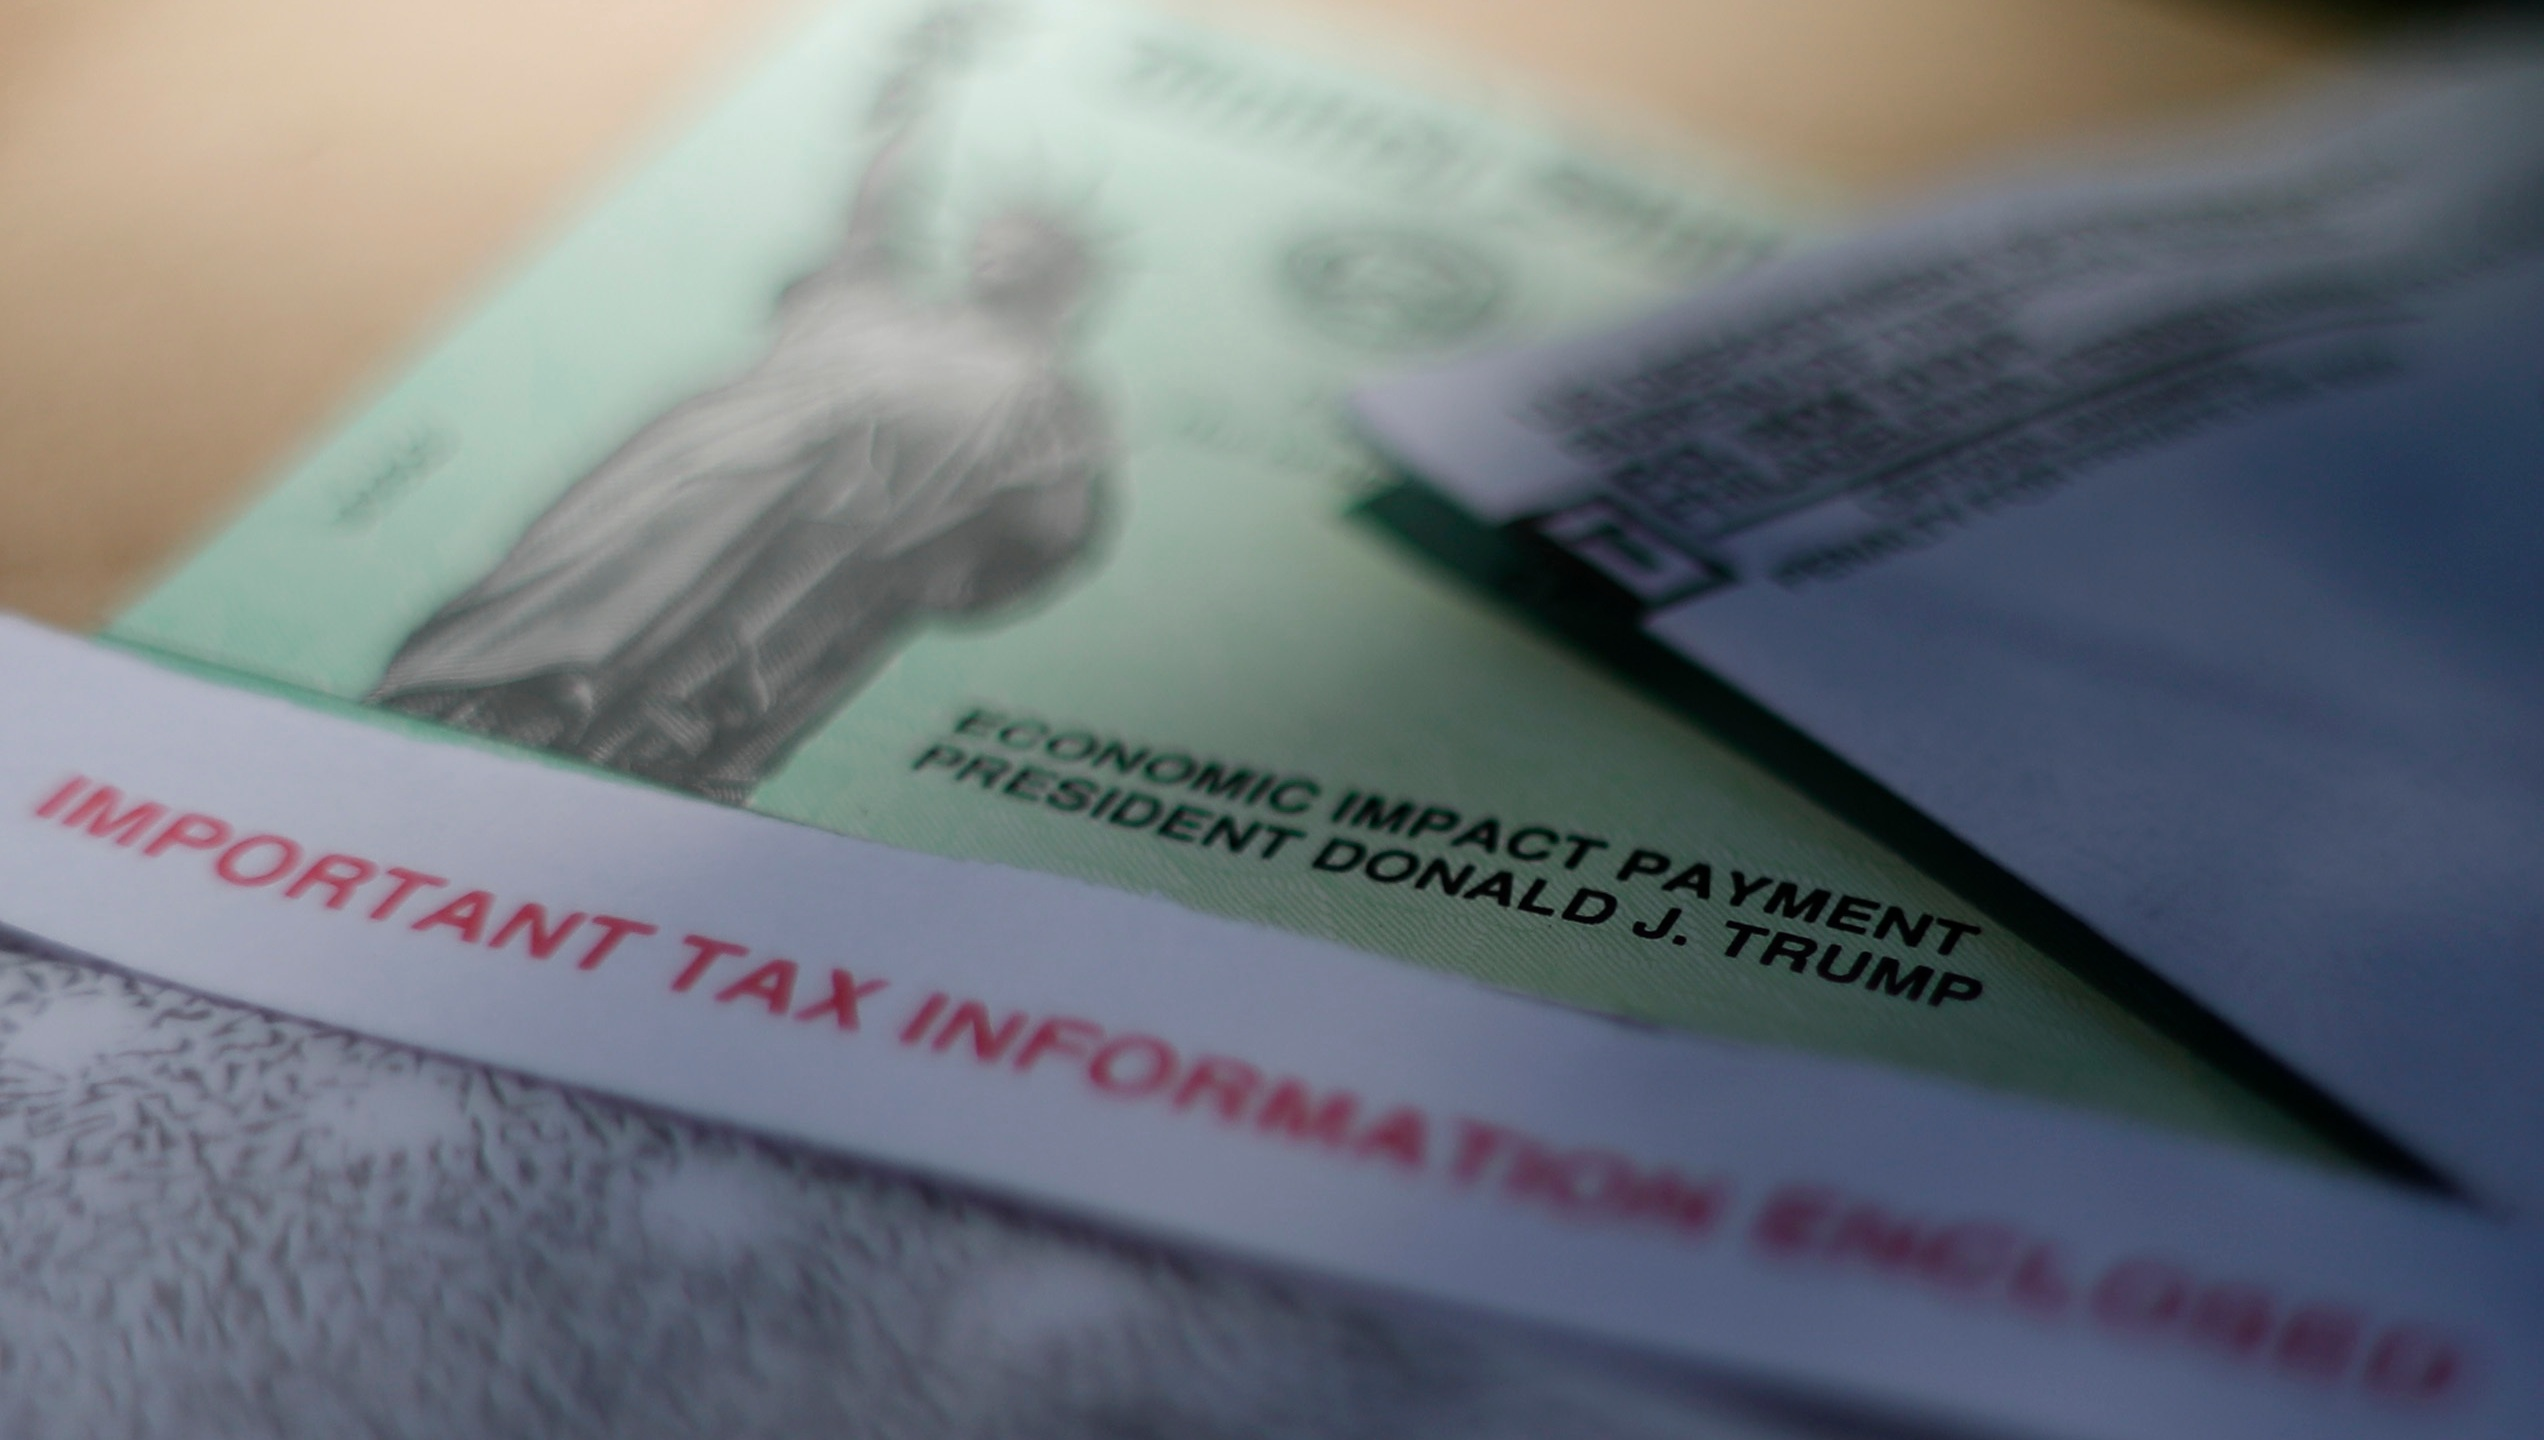 This April 23, 2020, file photo shows President Donald J. Trump's name printed on a stimulus check issued by the IRS to help combat the adverse economic effects of the new coronavirus outbreak in San Antonio. (AP Photo/Eric Gay, File)